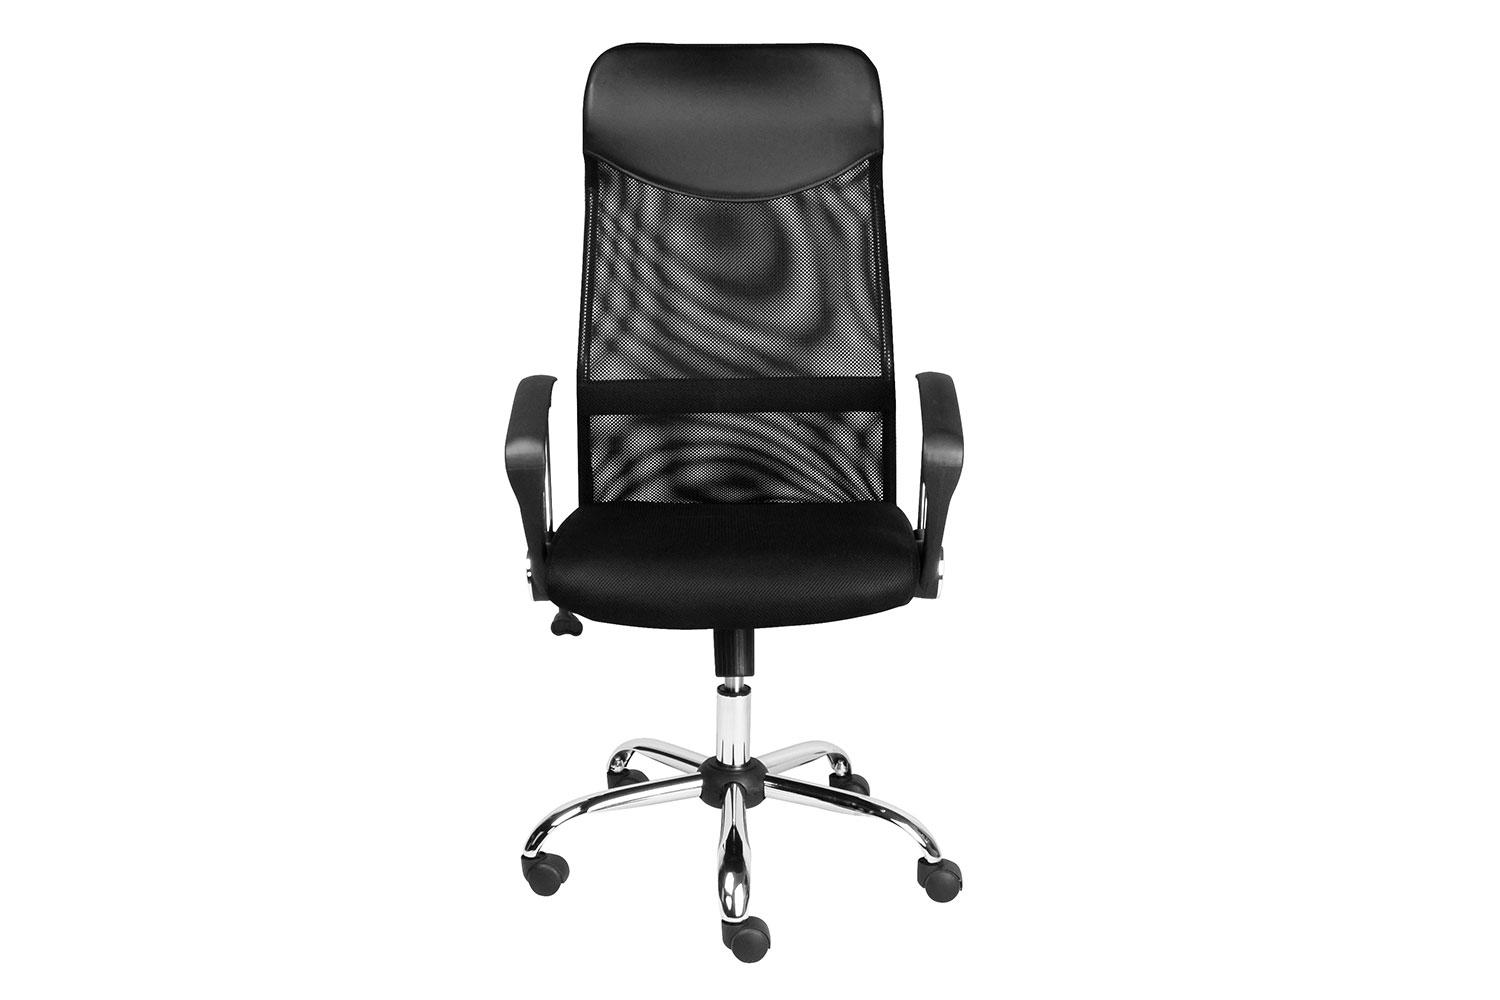 office chair penang high quality folding lawn chairs harvey norman new zealand marnie